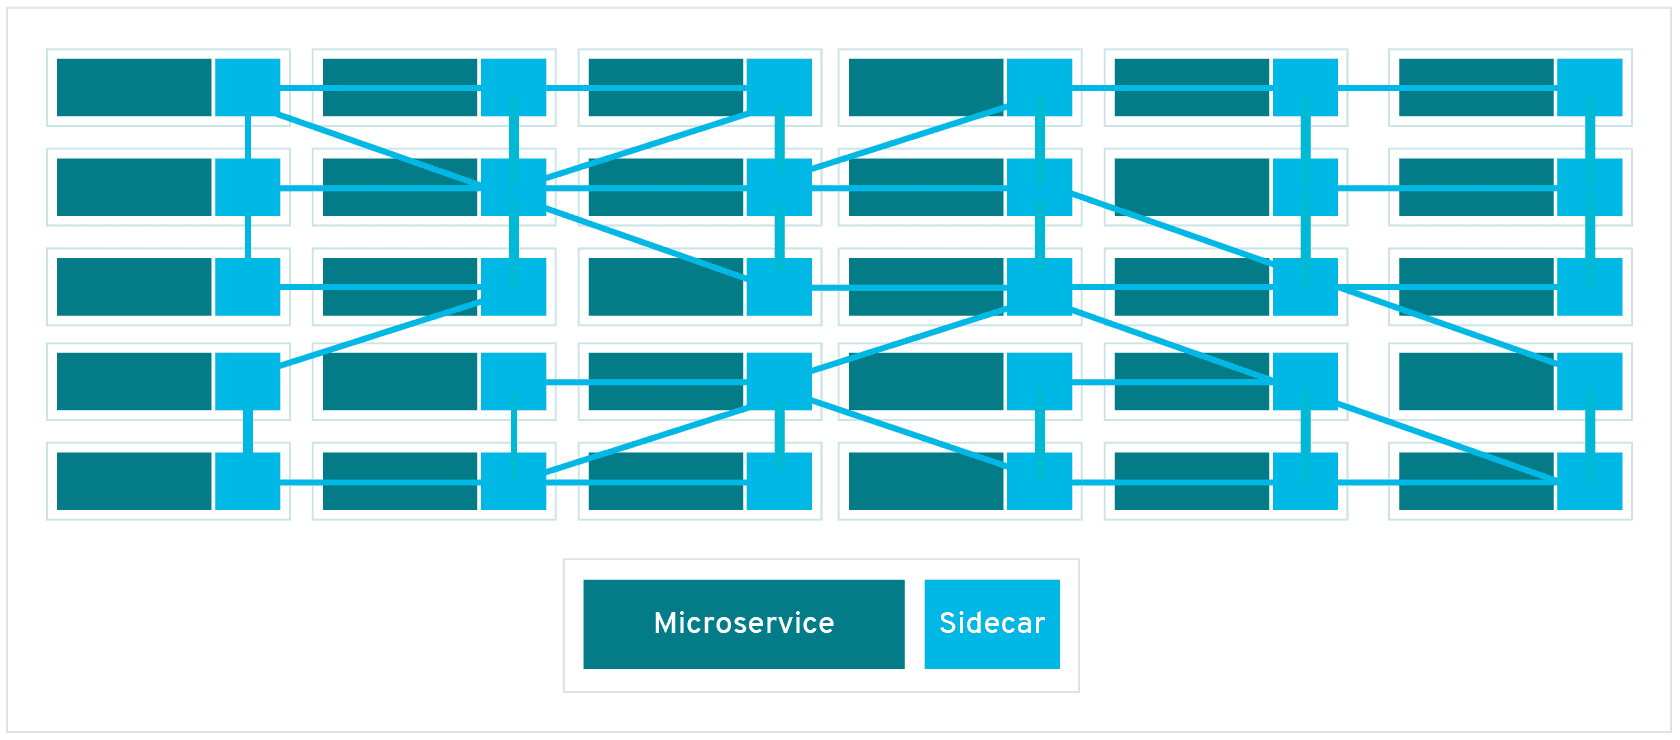 https://www.redhat.com/ko/topics/microservices/what-is-a-service-mesh